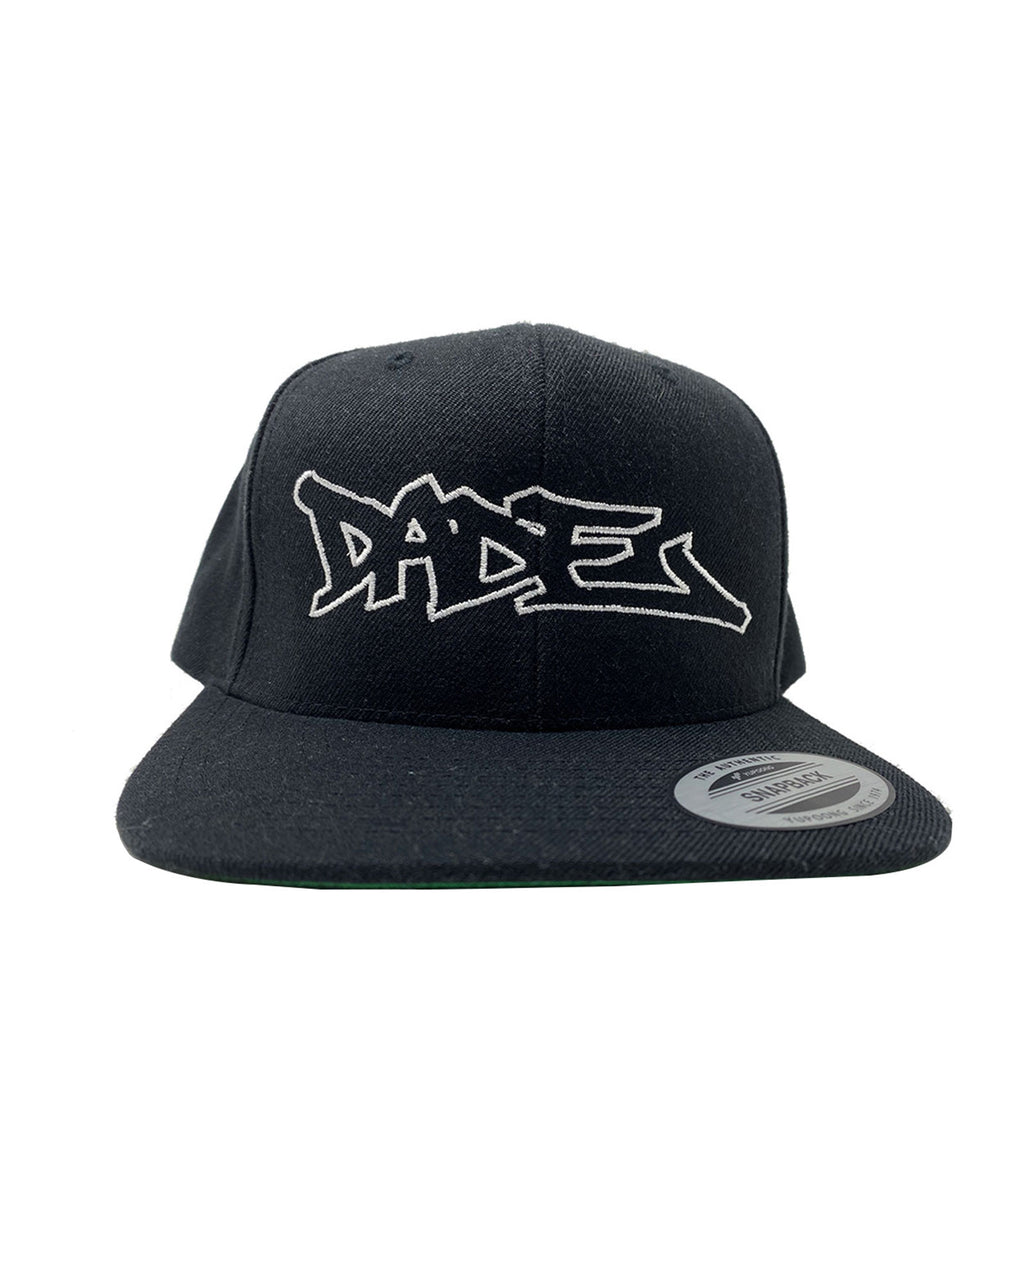 Dade Worldwide Snap Back